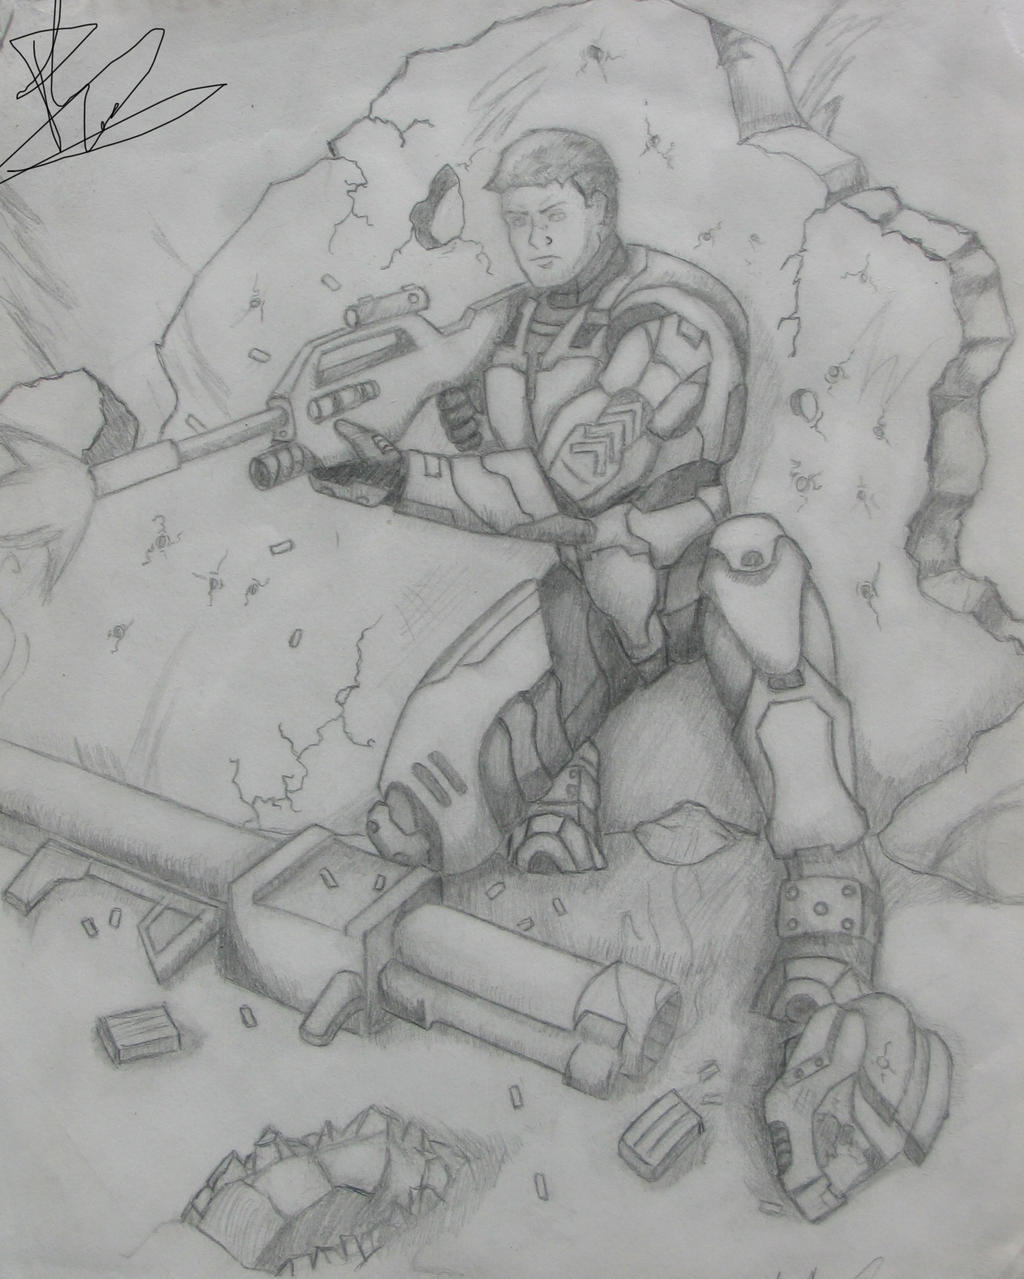 Cornered Spartan by Sofa-King-Leet